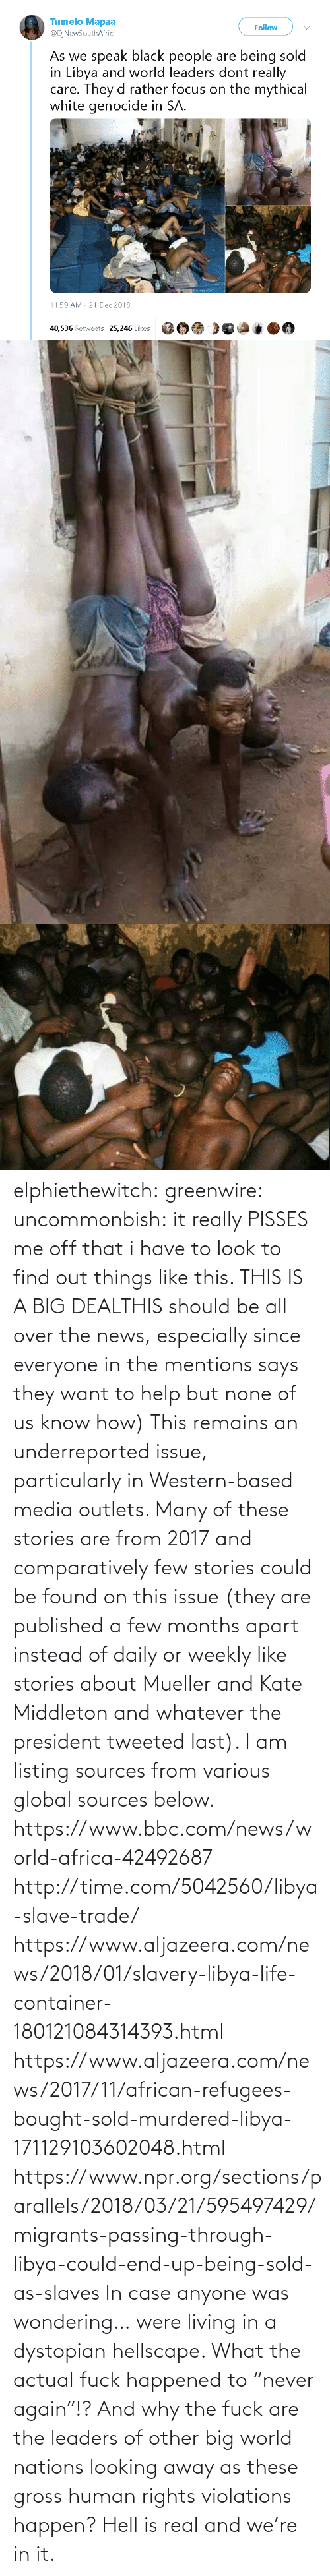 "Us: elphiethewitch: greenwire:  uncommonbish:  it really PISSES me off that i have to look to find out things like this. THIS IS A BIG DEALTHIS should be all over the news, especially since everyone in the mentions says they want to help but none of us know how)  This remains an underreported issue, particularly in Western-based media outlets. Many of these stories are from 2017 and comparatively few stories could be found on this issue (they are published a few months apart instead of daily or weekly like stories about Mueller and Kate Middleton and whatever the president tweeted last). I am listing sources from various global sources below.  https://www.bbc.com/news/world-africa-42492687 http://time.com/5042560/libya-slave-trade/ https://www.aljazeera.com/news/2018/01/slavery-libya-life-container-180121084314393.html https://www.aljazeera.com/news/2017/11/african-refugees-bought-sold-murdered-libya-171129103602048.html https://www.npr.org/sections/parallels/2018/03/21/595497429/migrants-passing-through-libya-could-end-up-being-sold-as-slaves   In case anyone was wondering… were living in a dystopian hellscape.  What the actual fuck happened to ""never again""!? And why the fuck are the leaders of other big world nations looking away as these gross human rights violations happen?  Hell is real and we're in it."